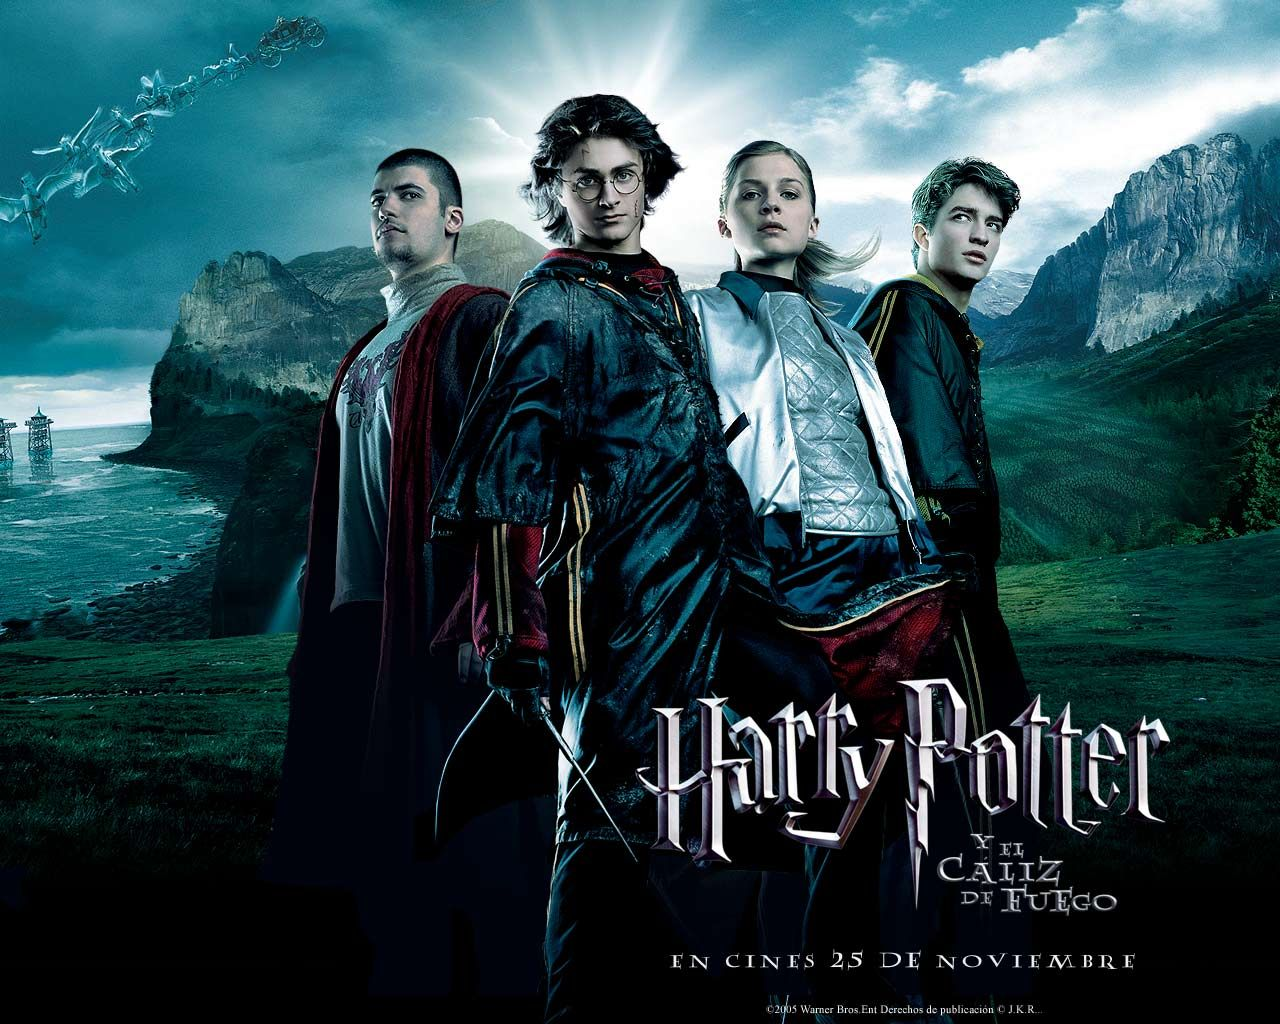 and again | Movies I´ve watch | Pinterest | Búsqueda, Harry potter ...